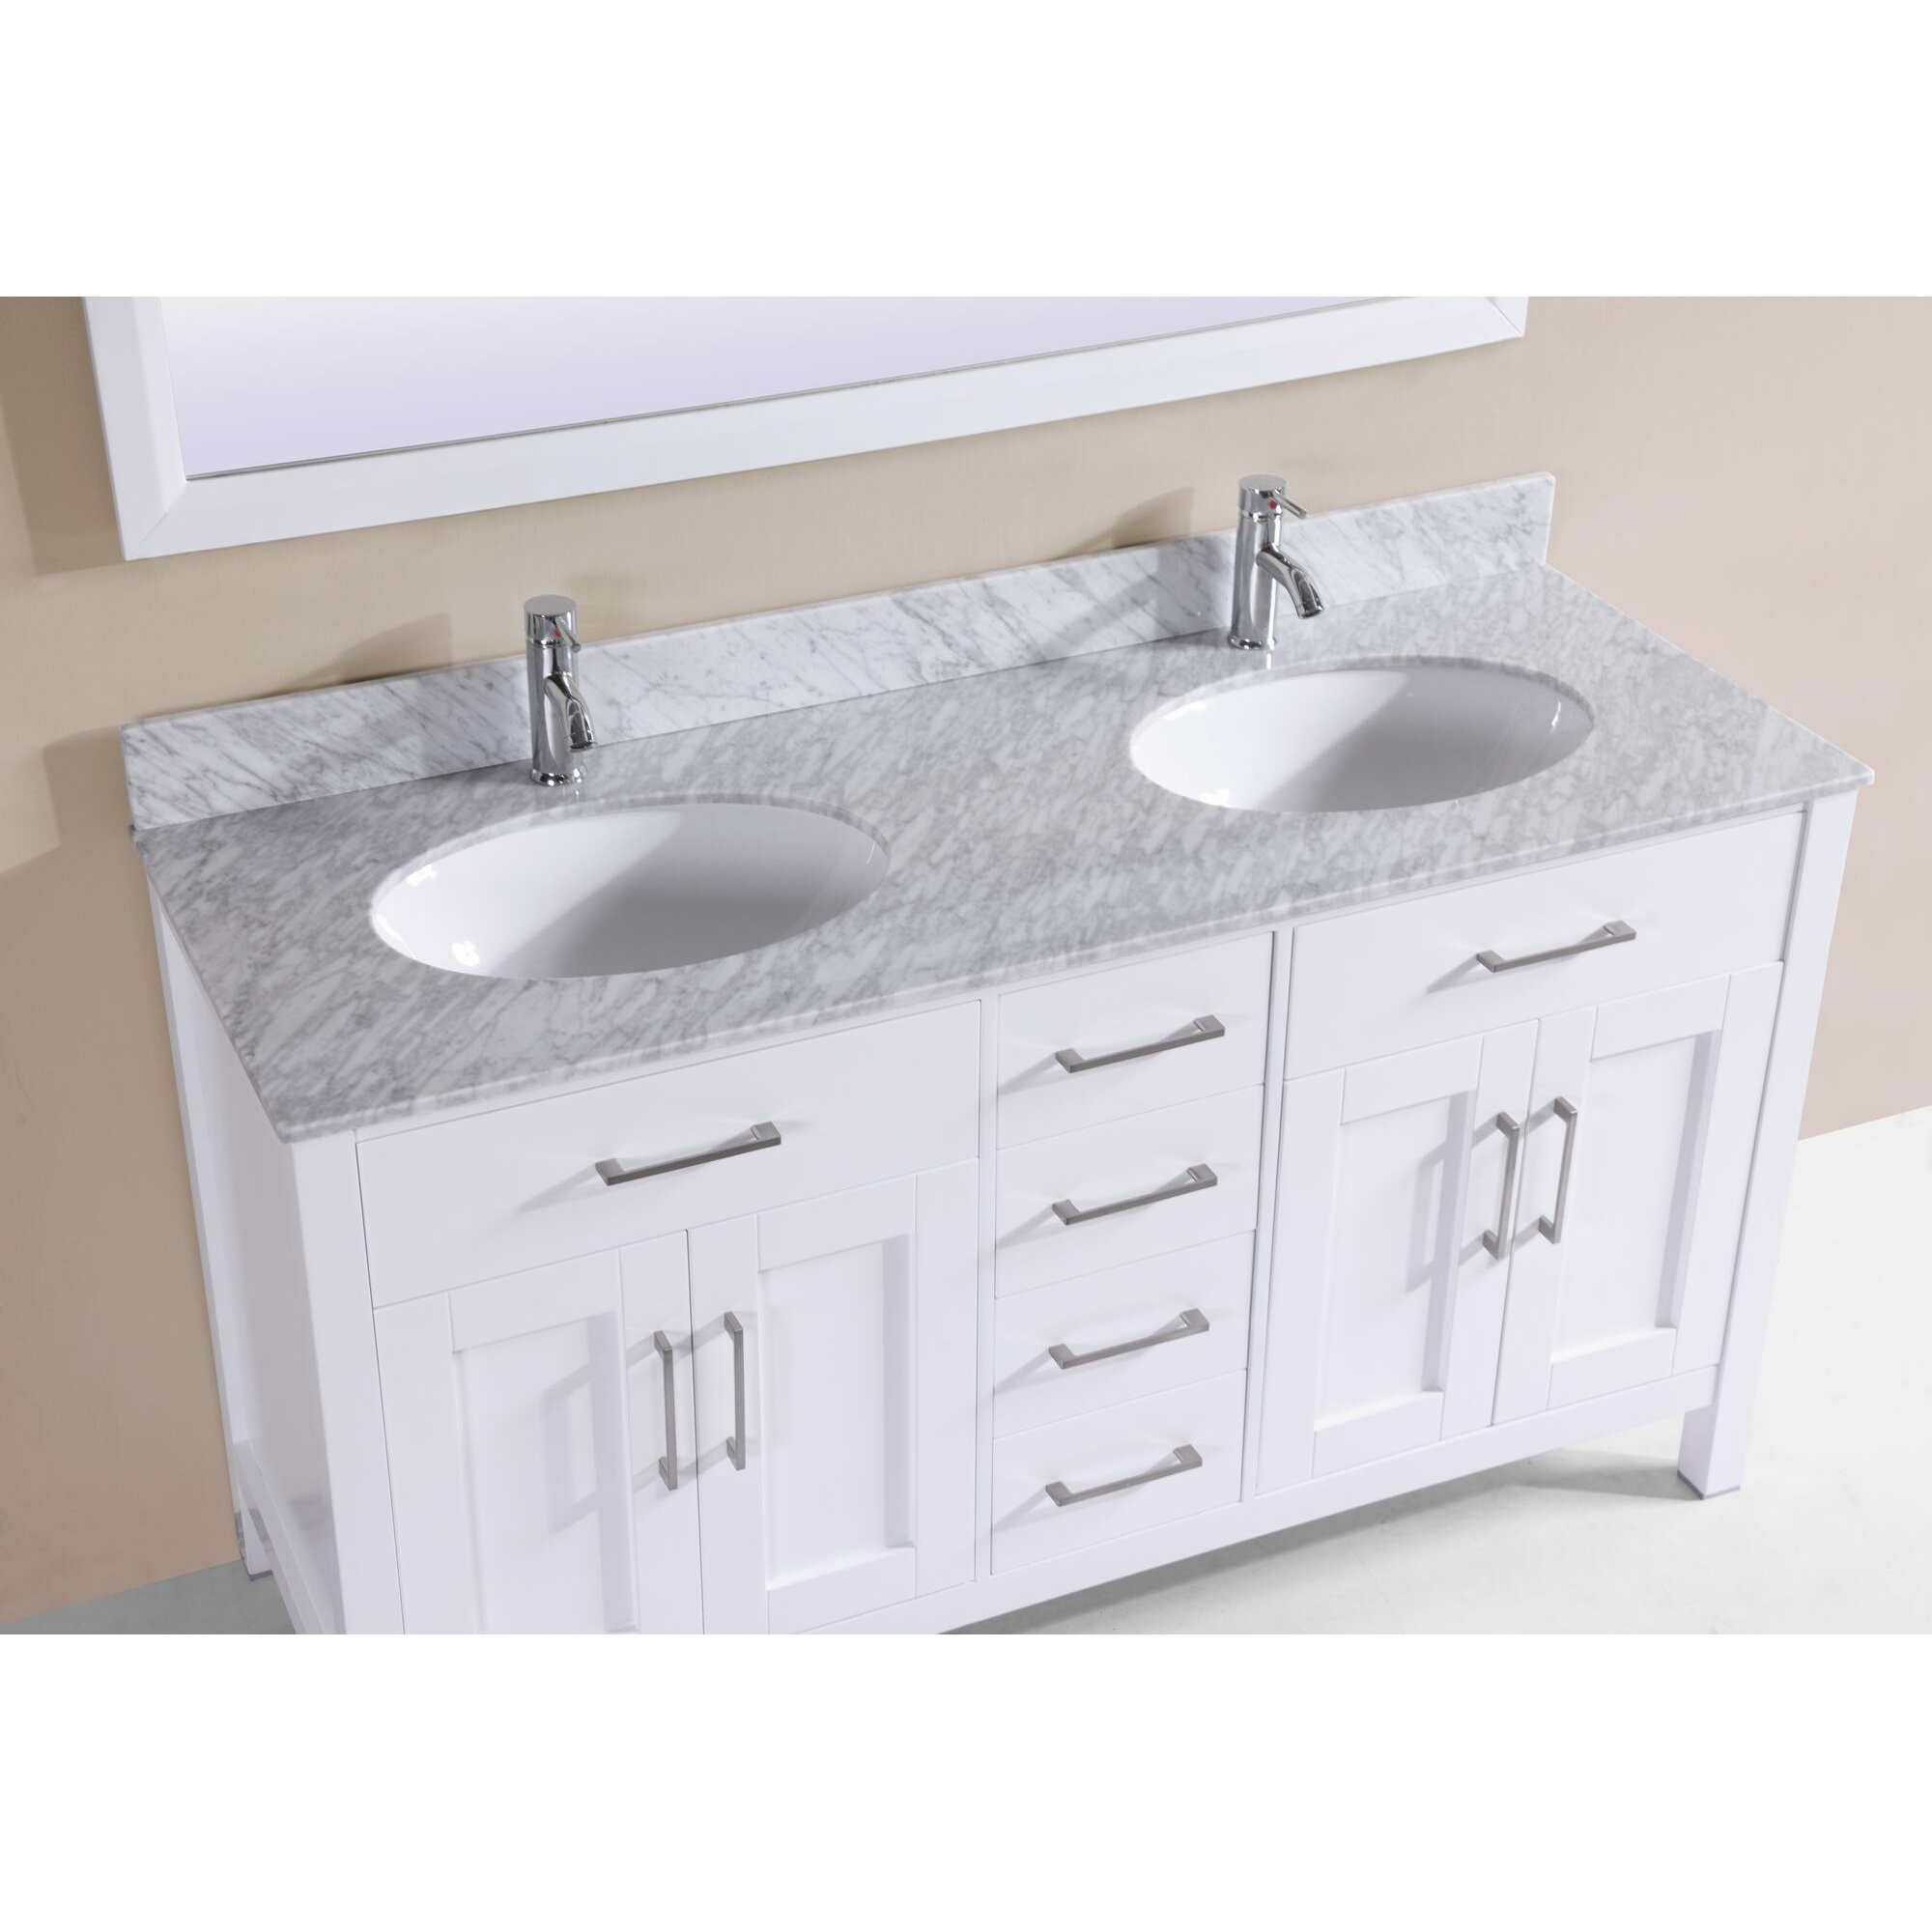 60 Bathroom Cabinet Belvederebath 60 Modern Double Bathroom Vanity Set Wayfair